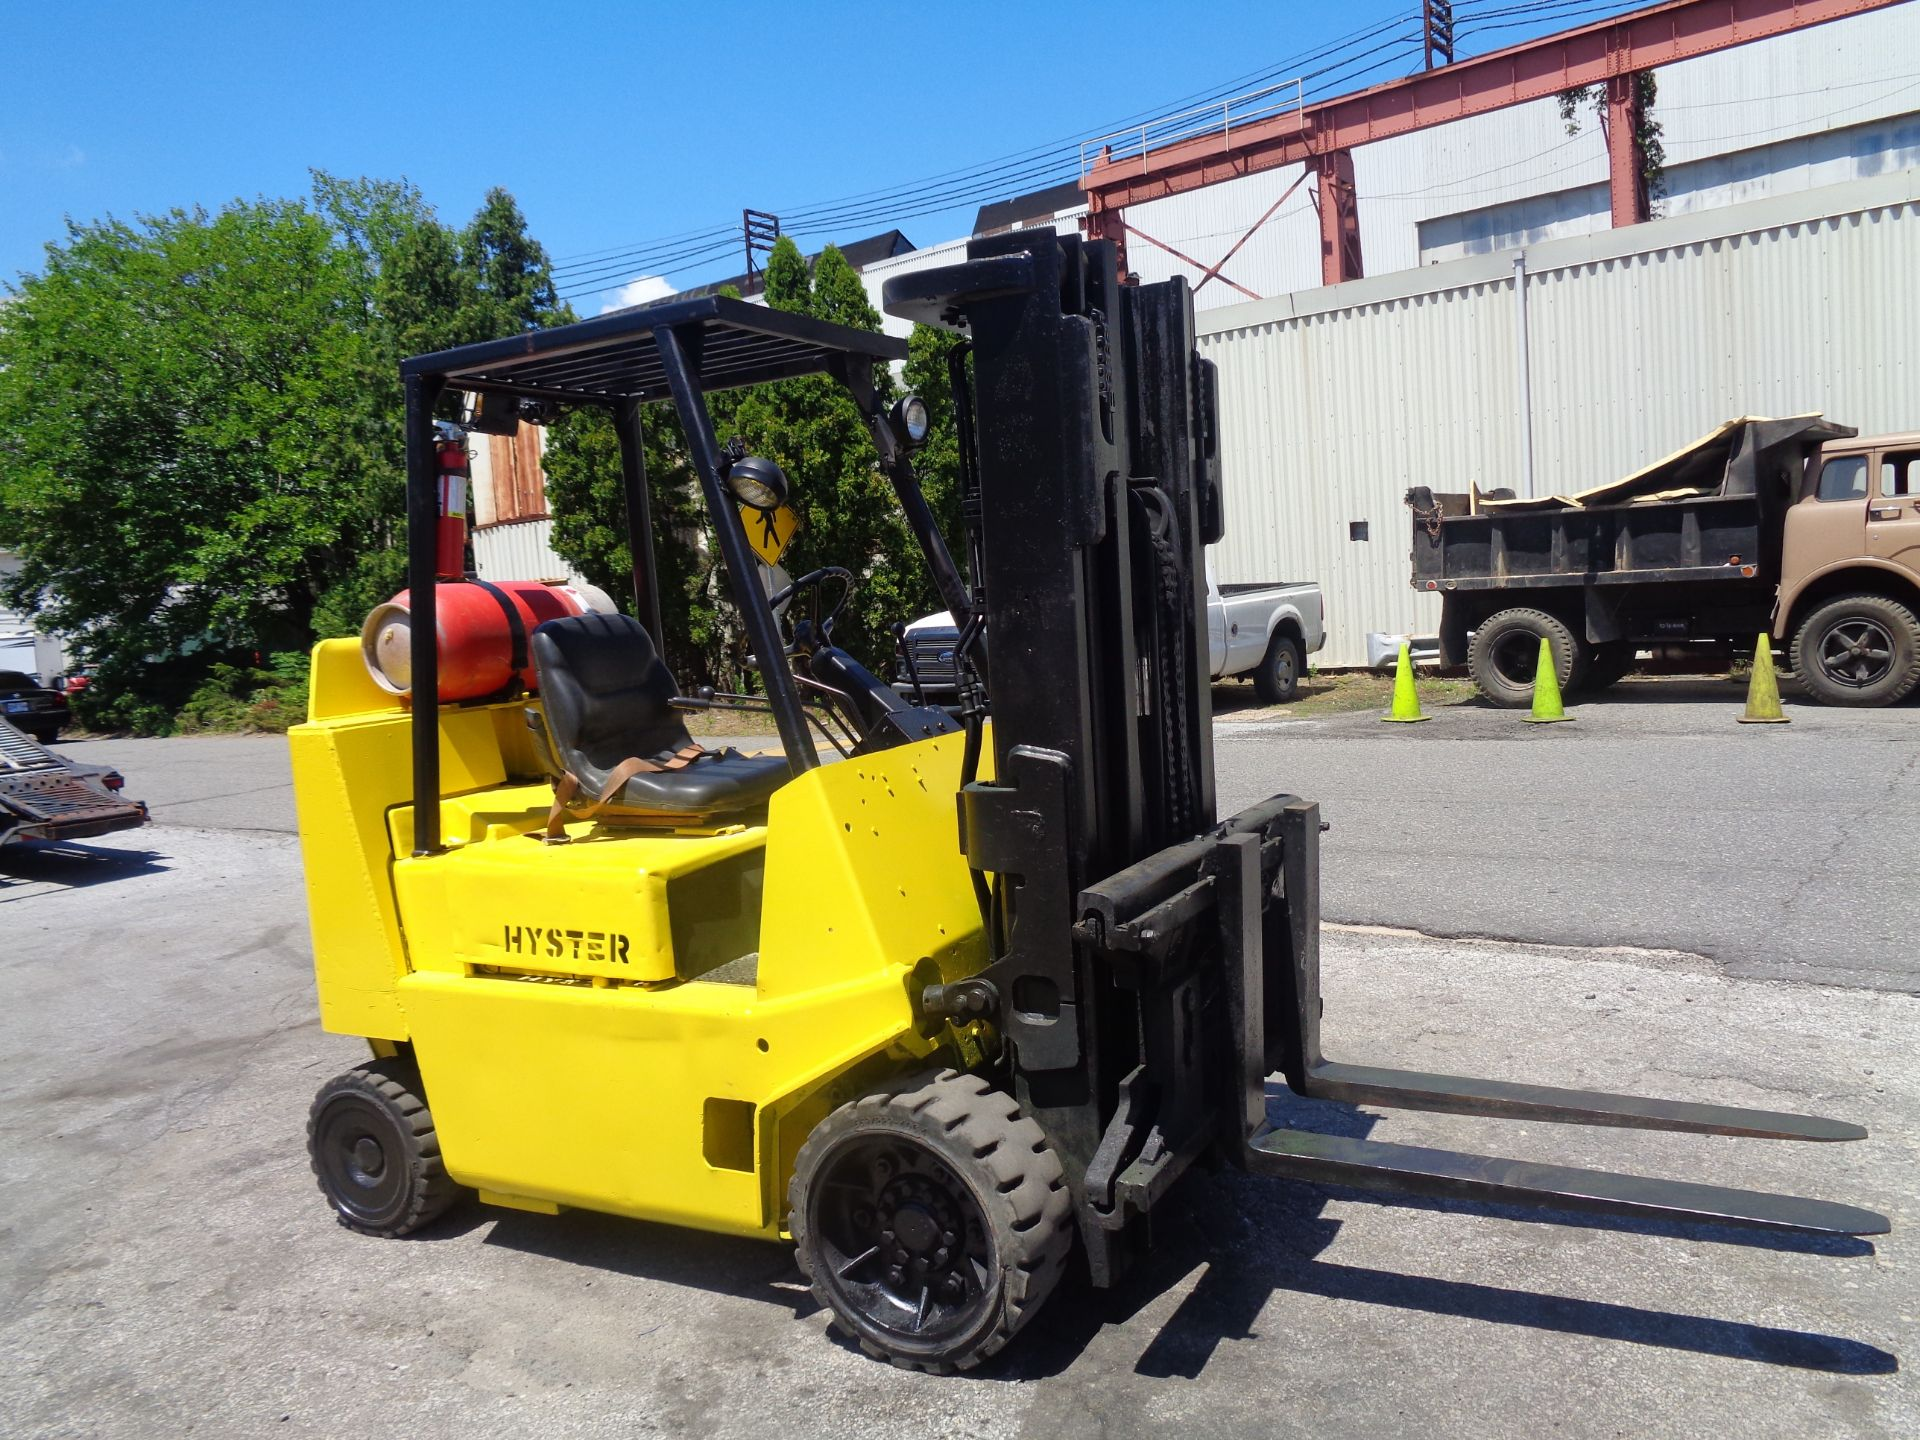 Hyster S80XL 8,000 lbs Forklift - Image 12 of 13